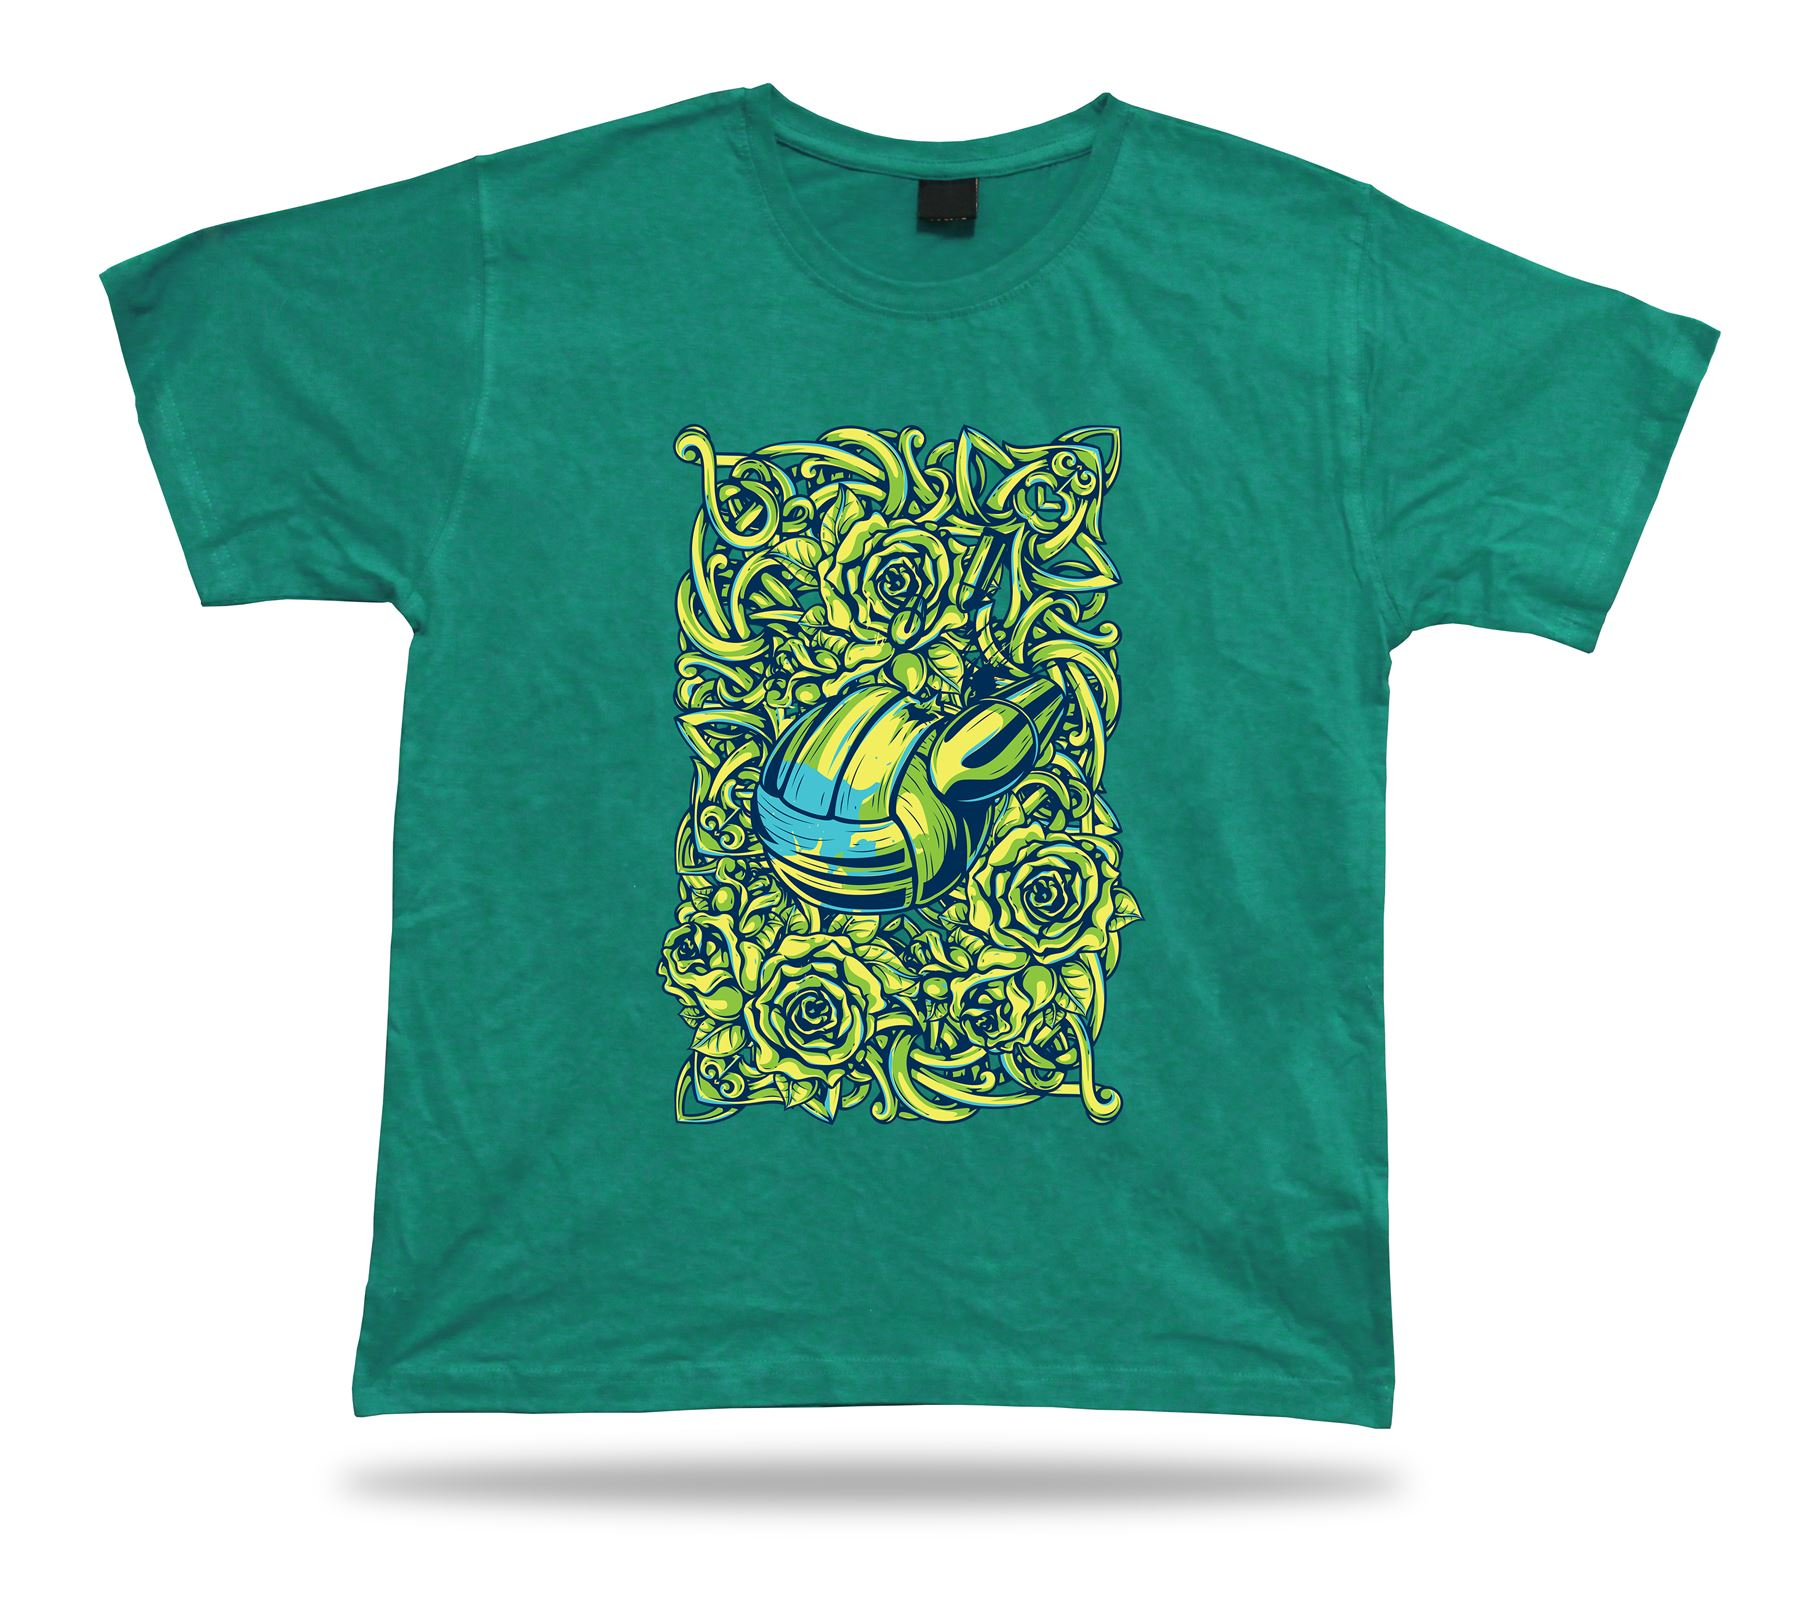 Volleyball Bullet Rose Thorn Cool Tshirt Design Awesome